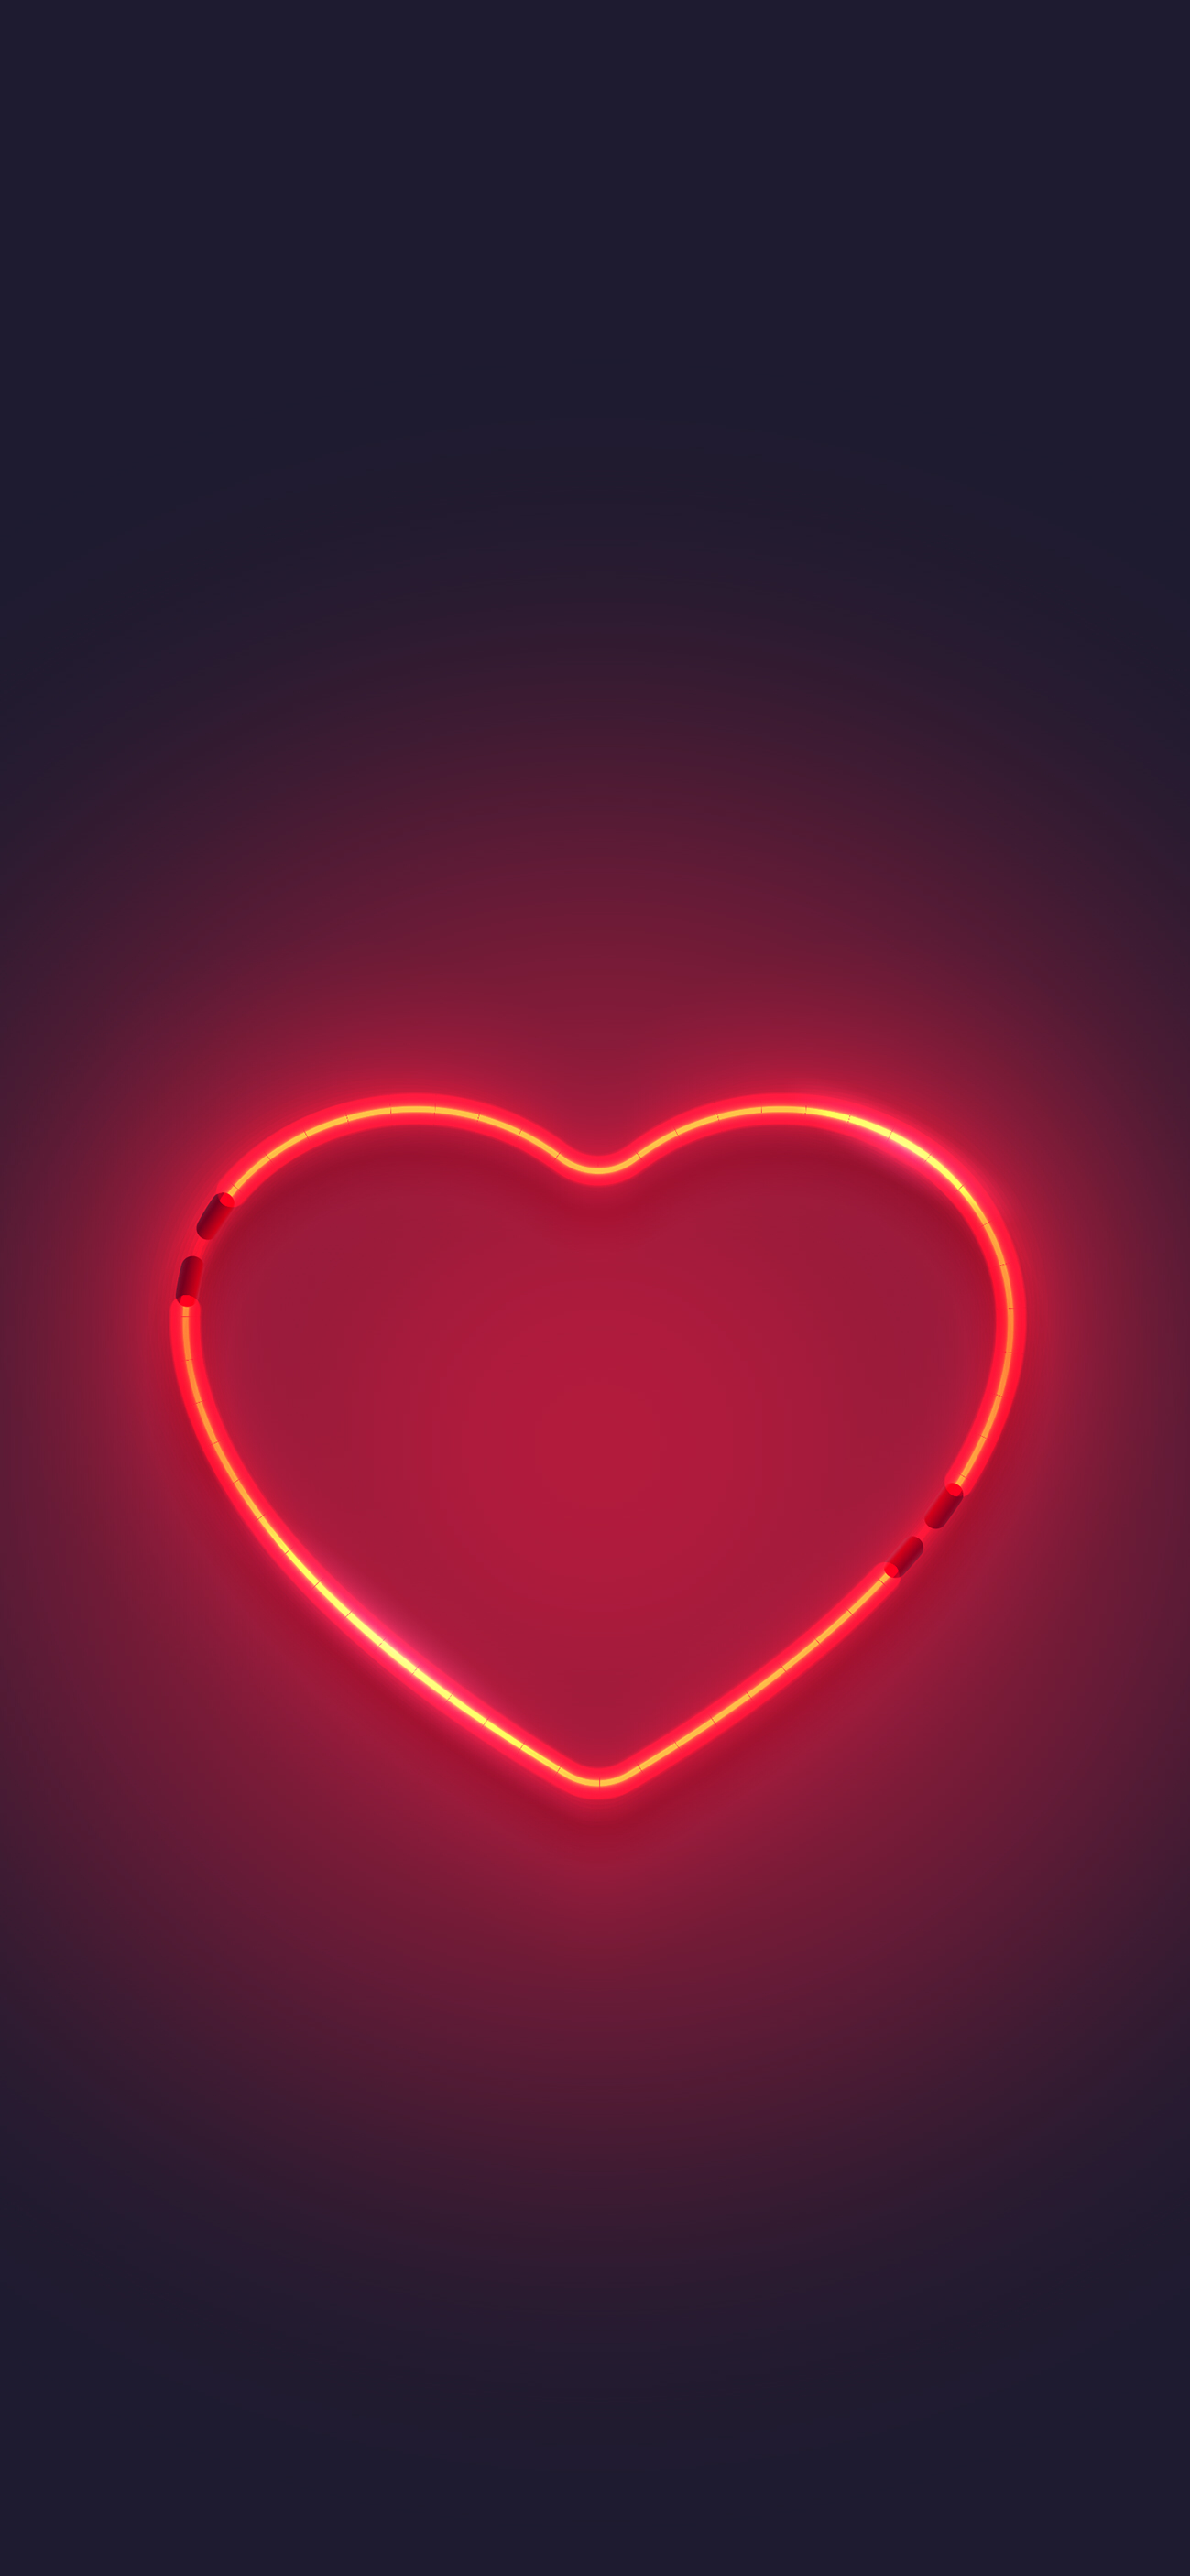 Iphone Background Neon Red Aesthetic Wallpaper